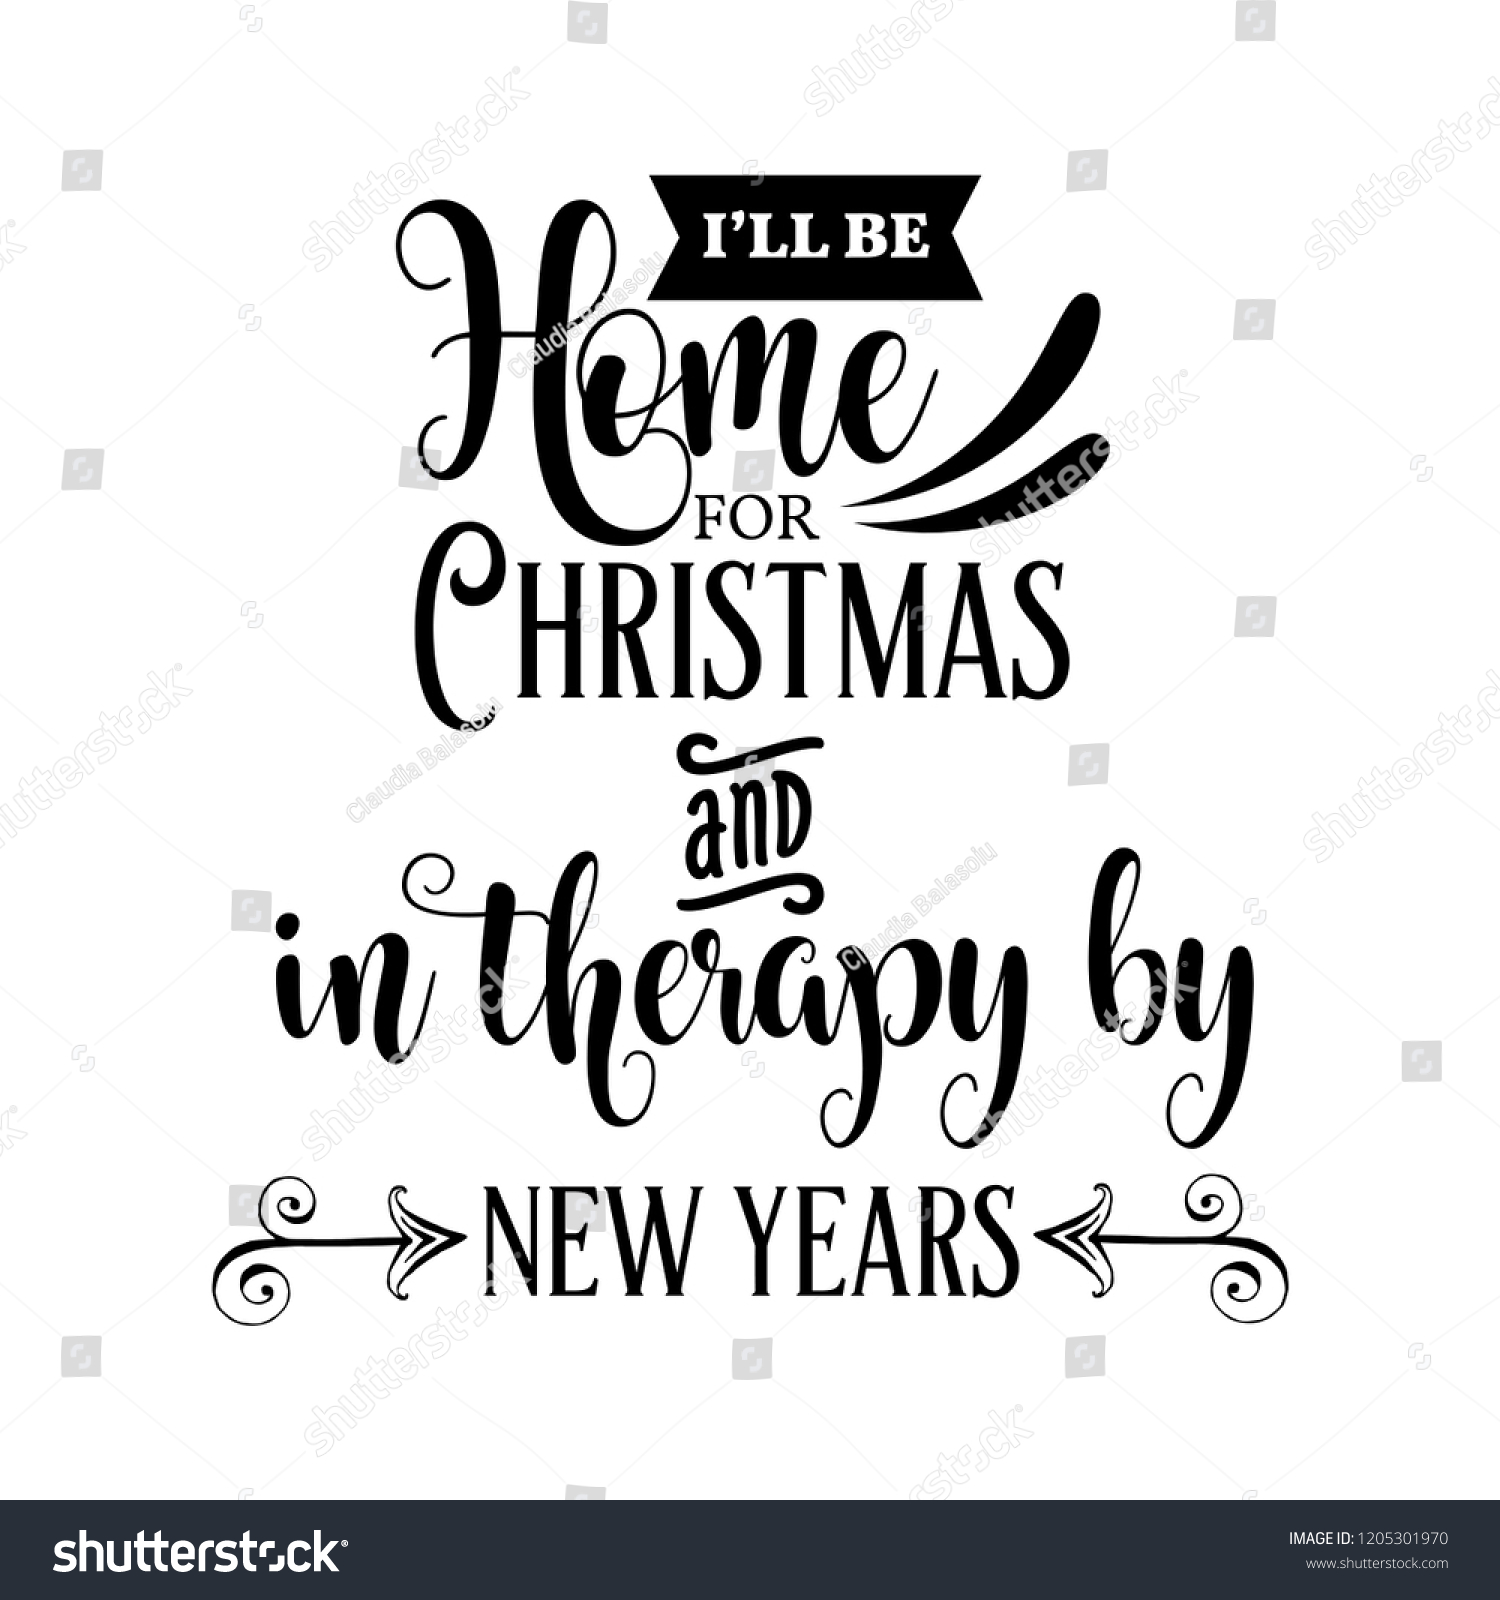 Funny Christmas Quote Ill Be Home Christmas Stock Vector (Royalty ...